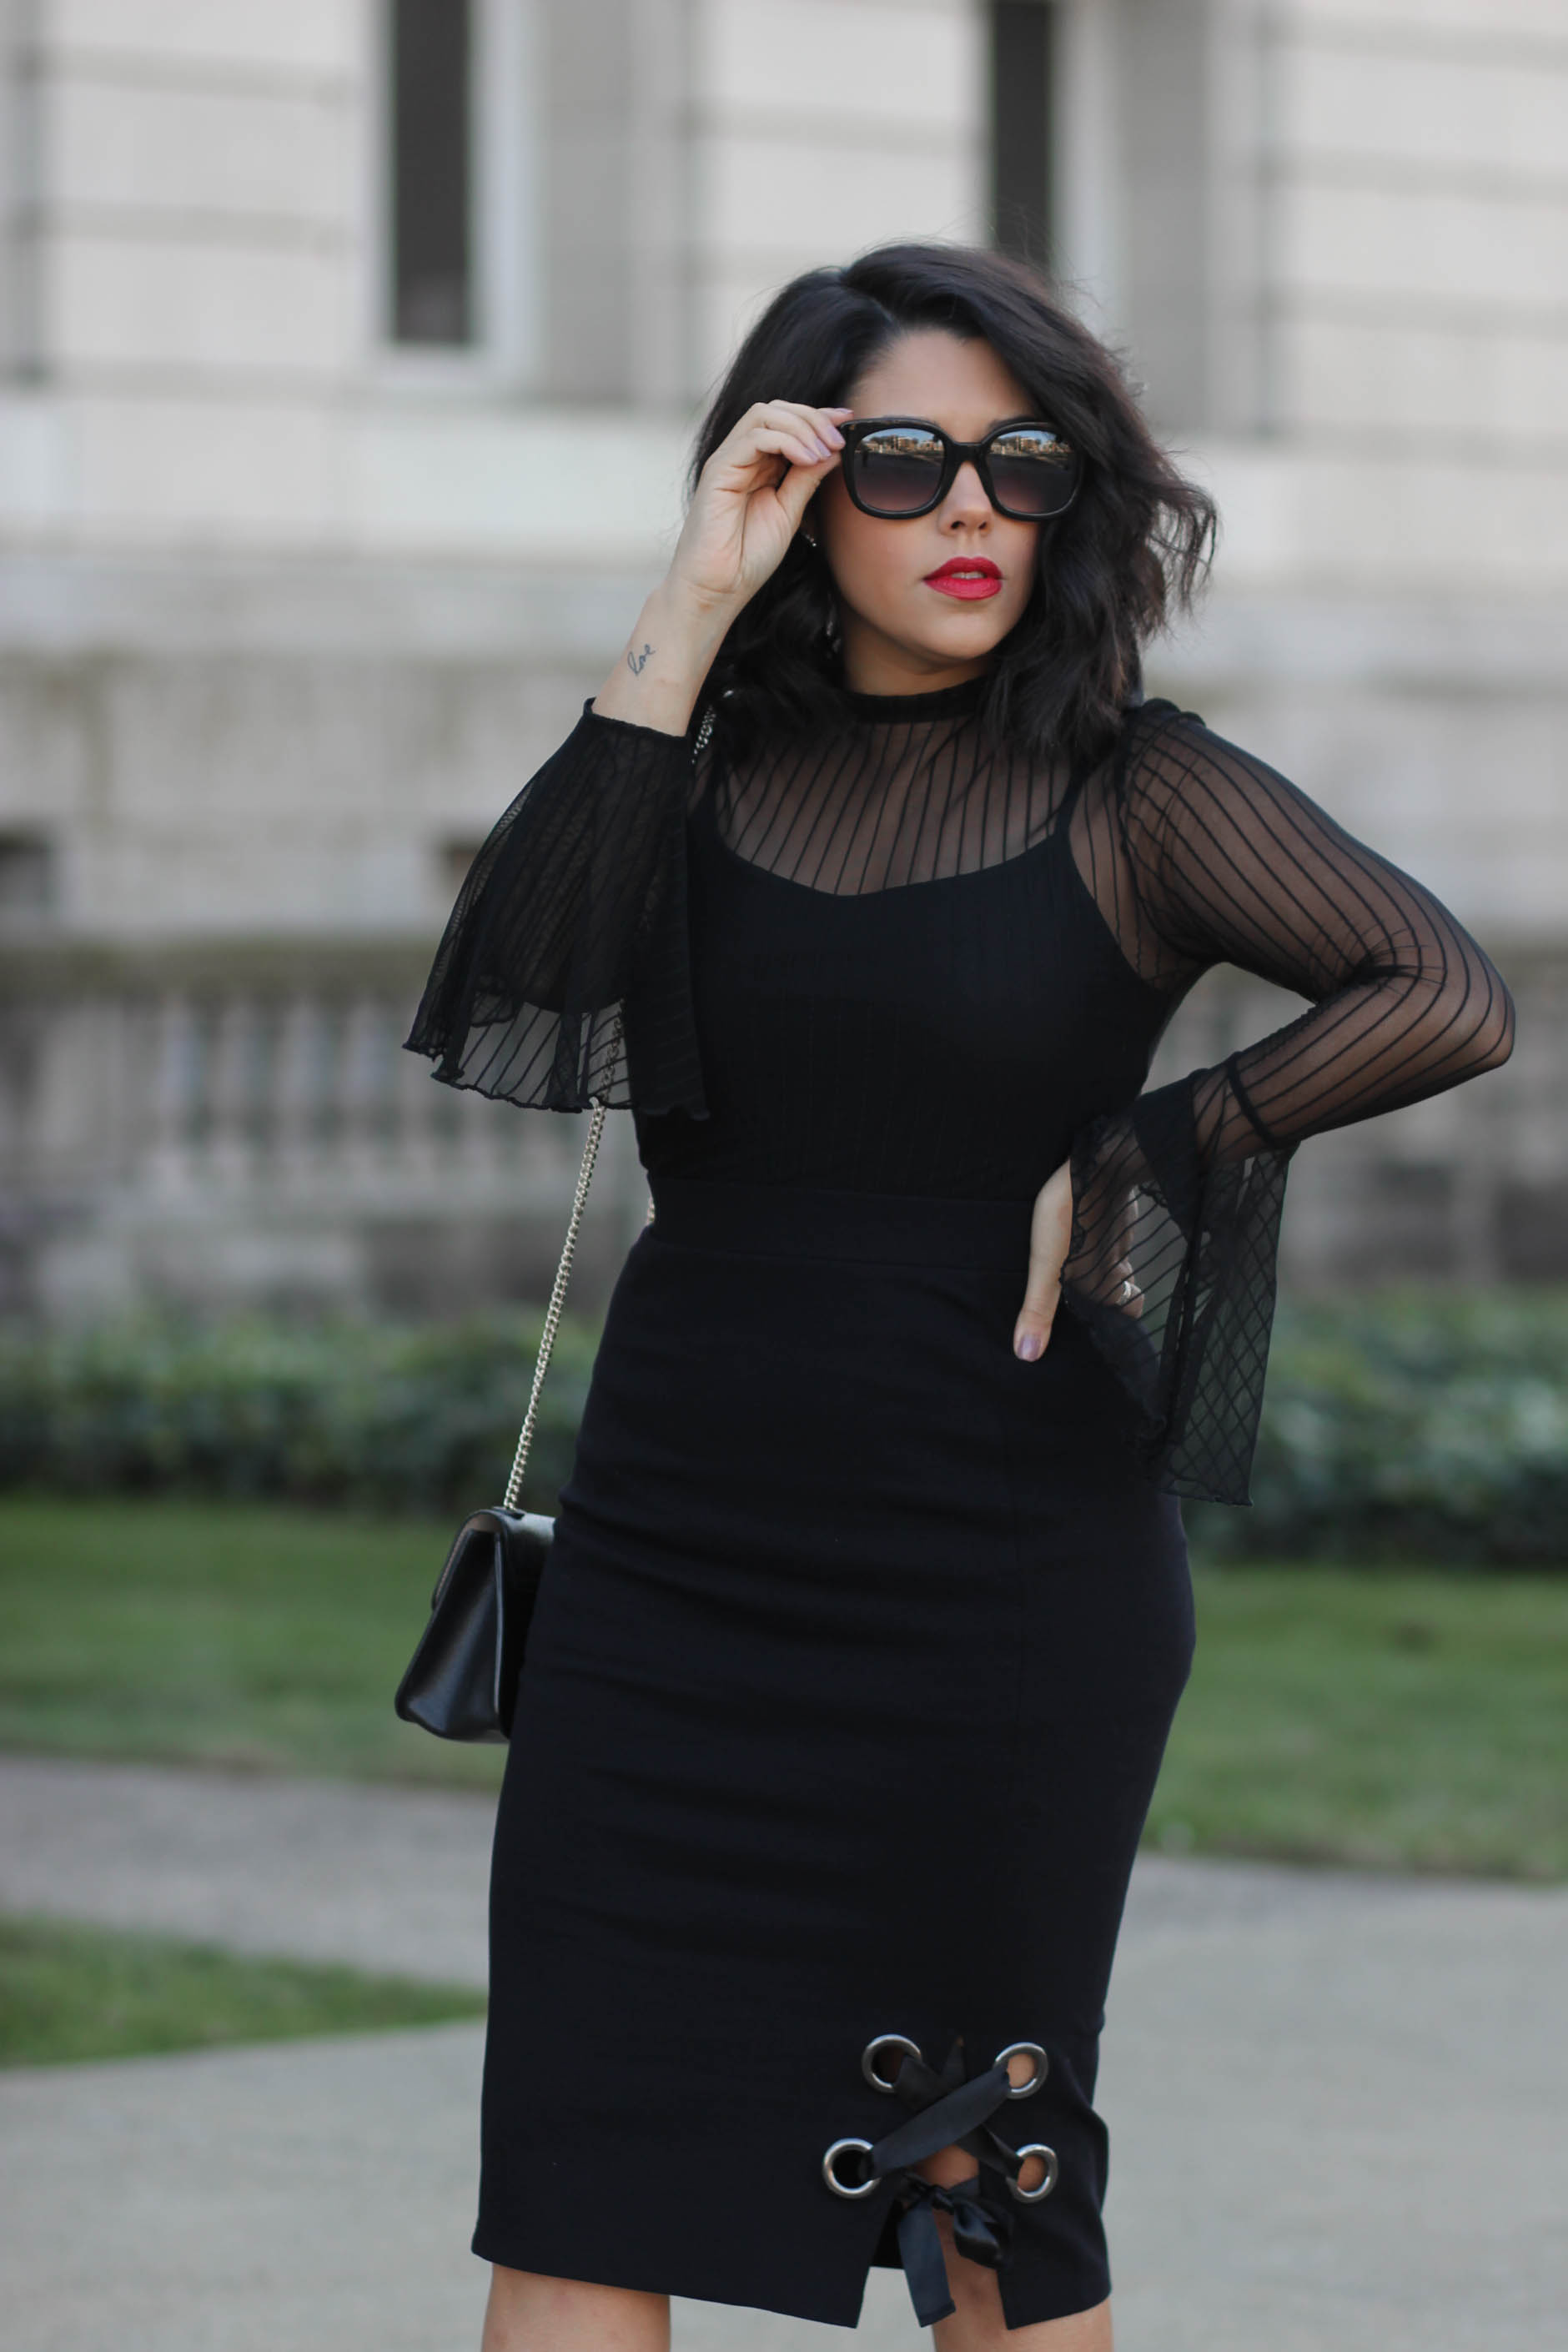 Lifestyle blogger Naty Michele wearing Project Runway and JCPenney collection